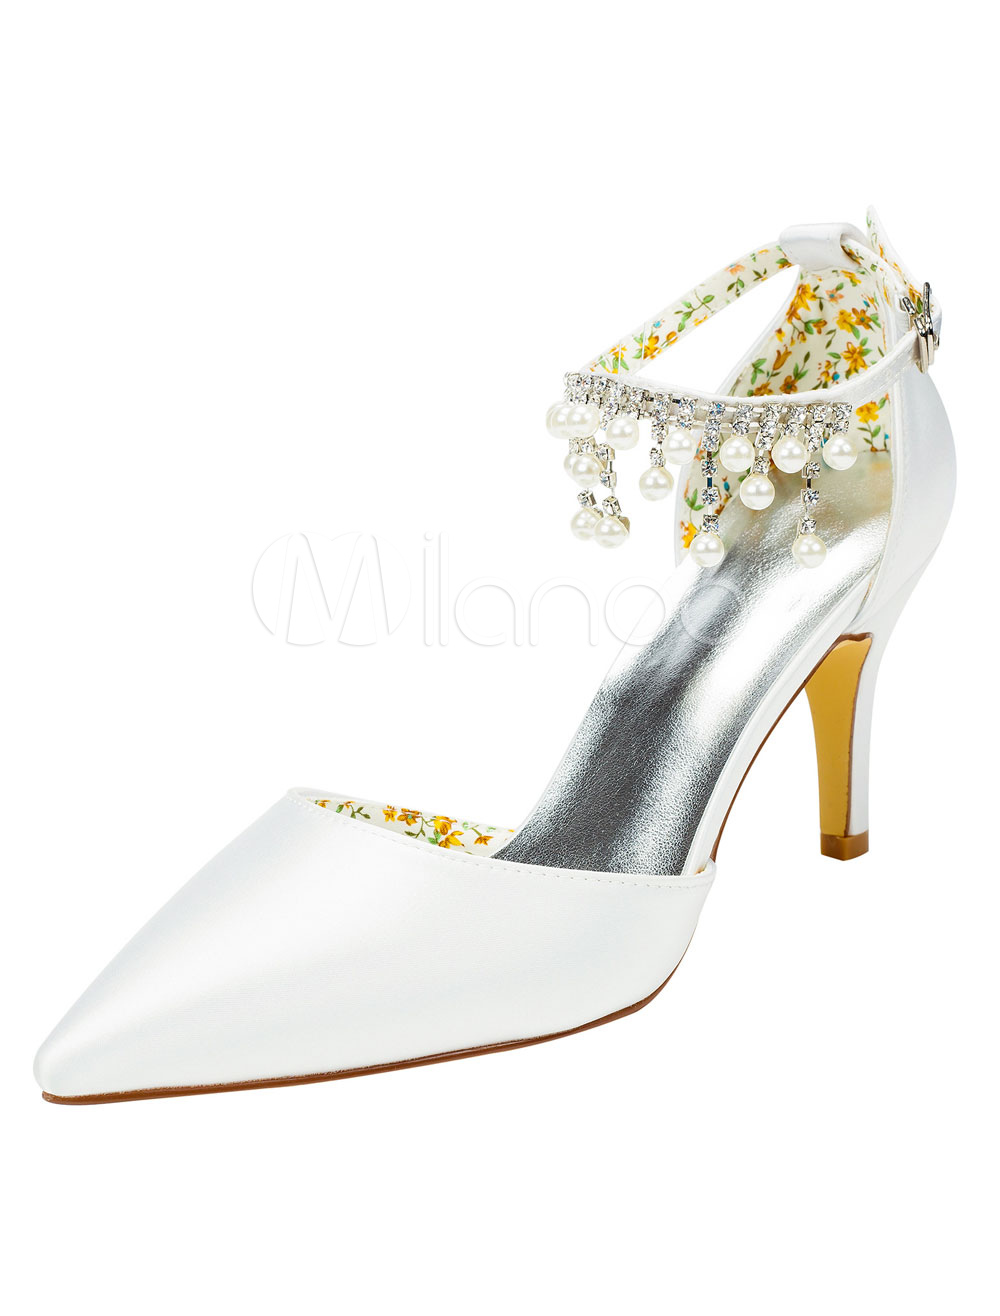 Buy Pearls Bridal Shoes High Heel Pointed Toe White Pumps Women's Ankle Strap Elegant Rhinestones Evening Shoes for $55.09 in Milanoo store